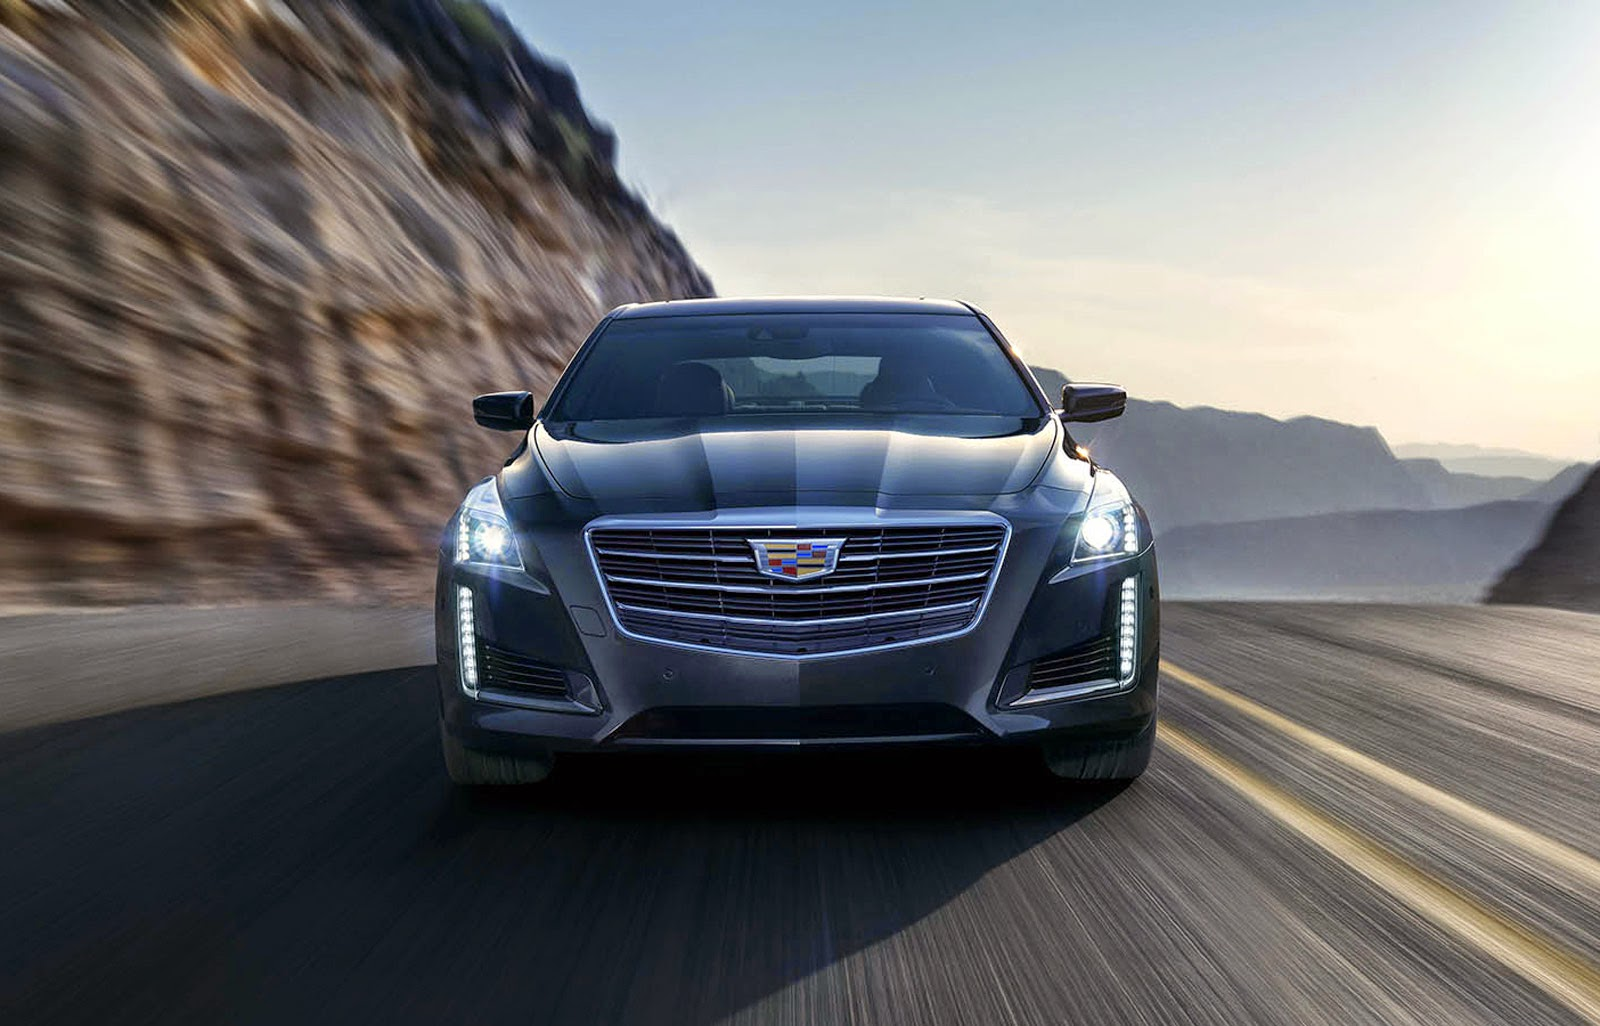 2015 Cadillac CTS Earns 5-Star NHTSA Safety Rating